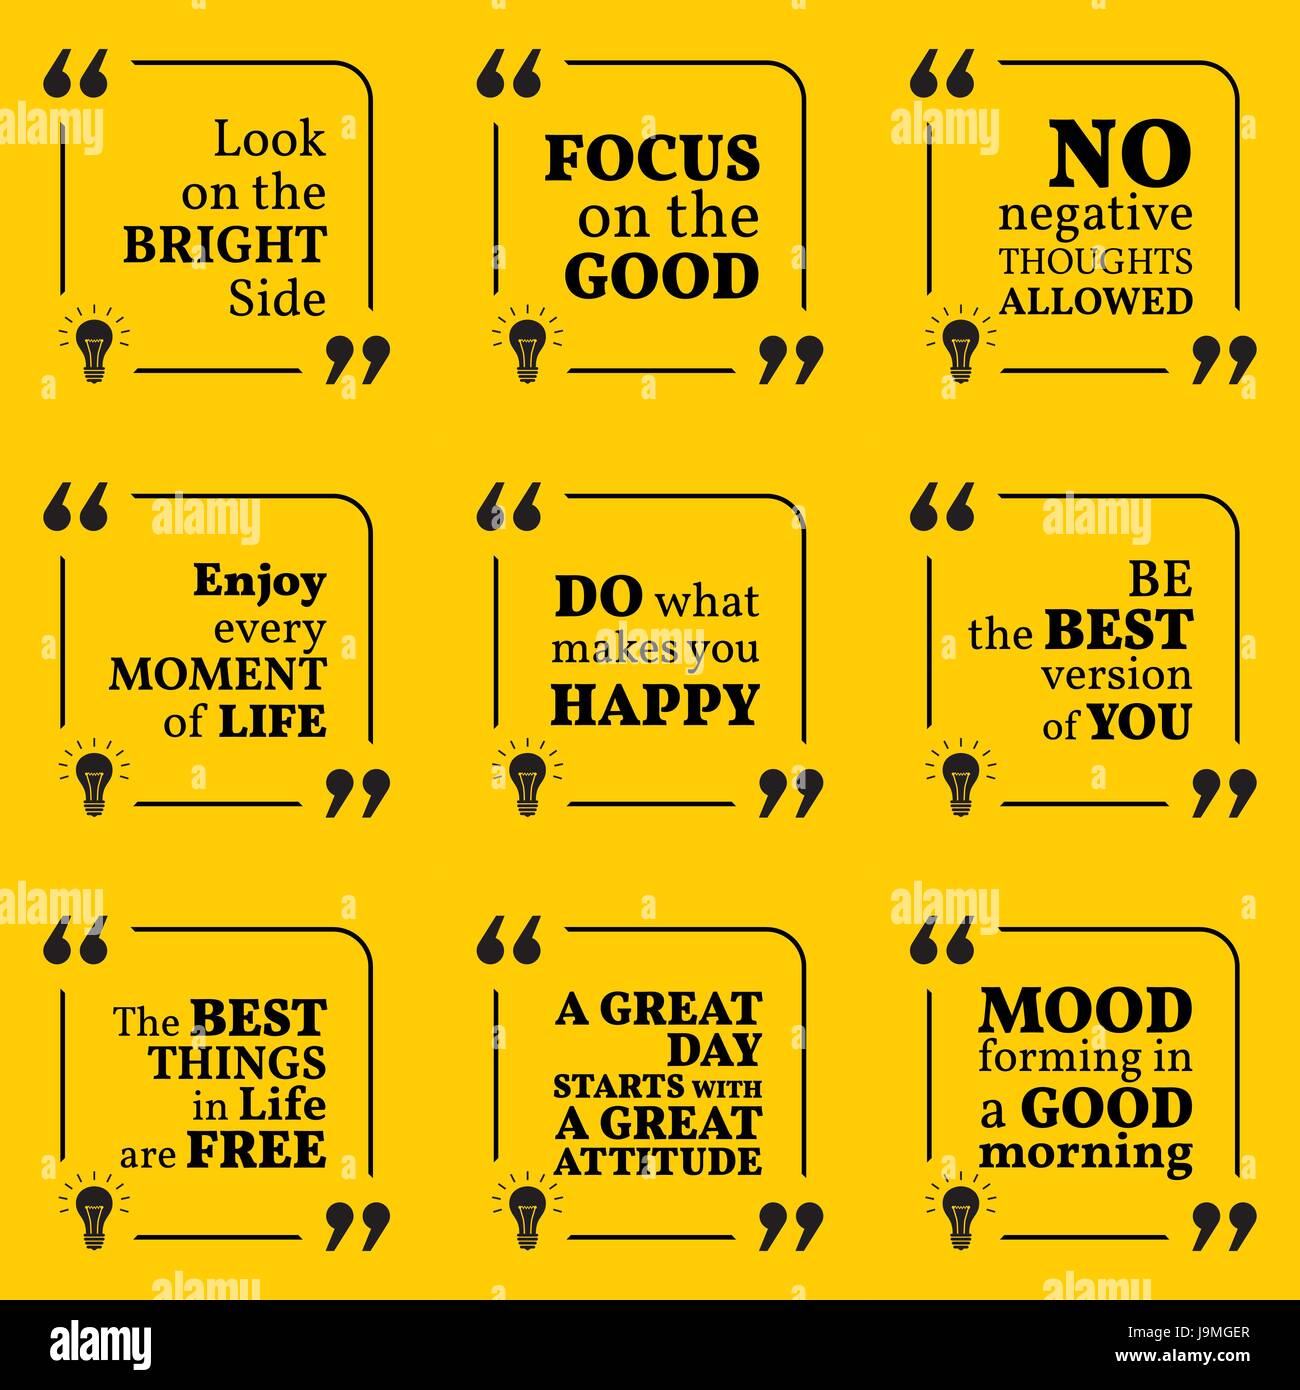 Good Motivational Quotes Set Of Motivational Quotes About Positive Thinking Optimism Stock